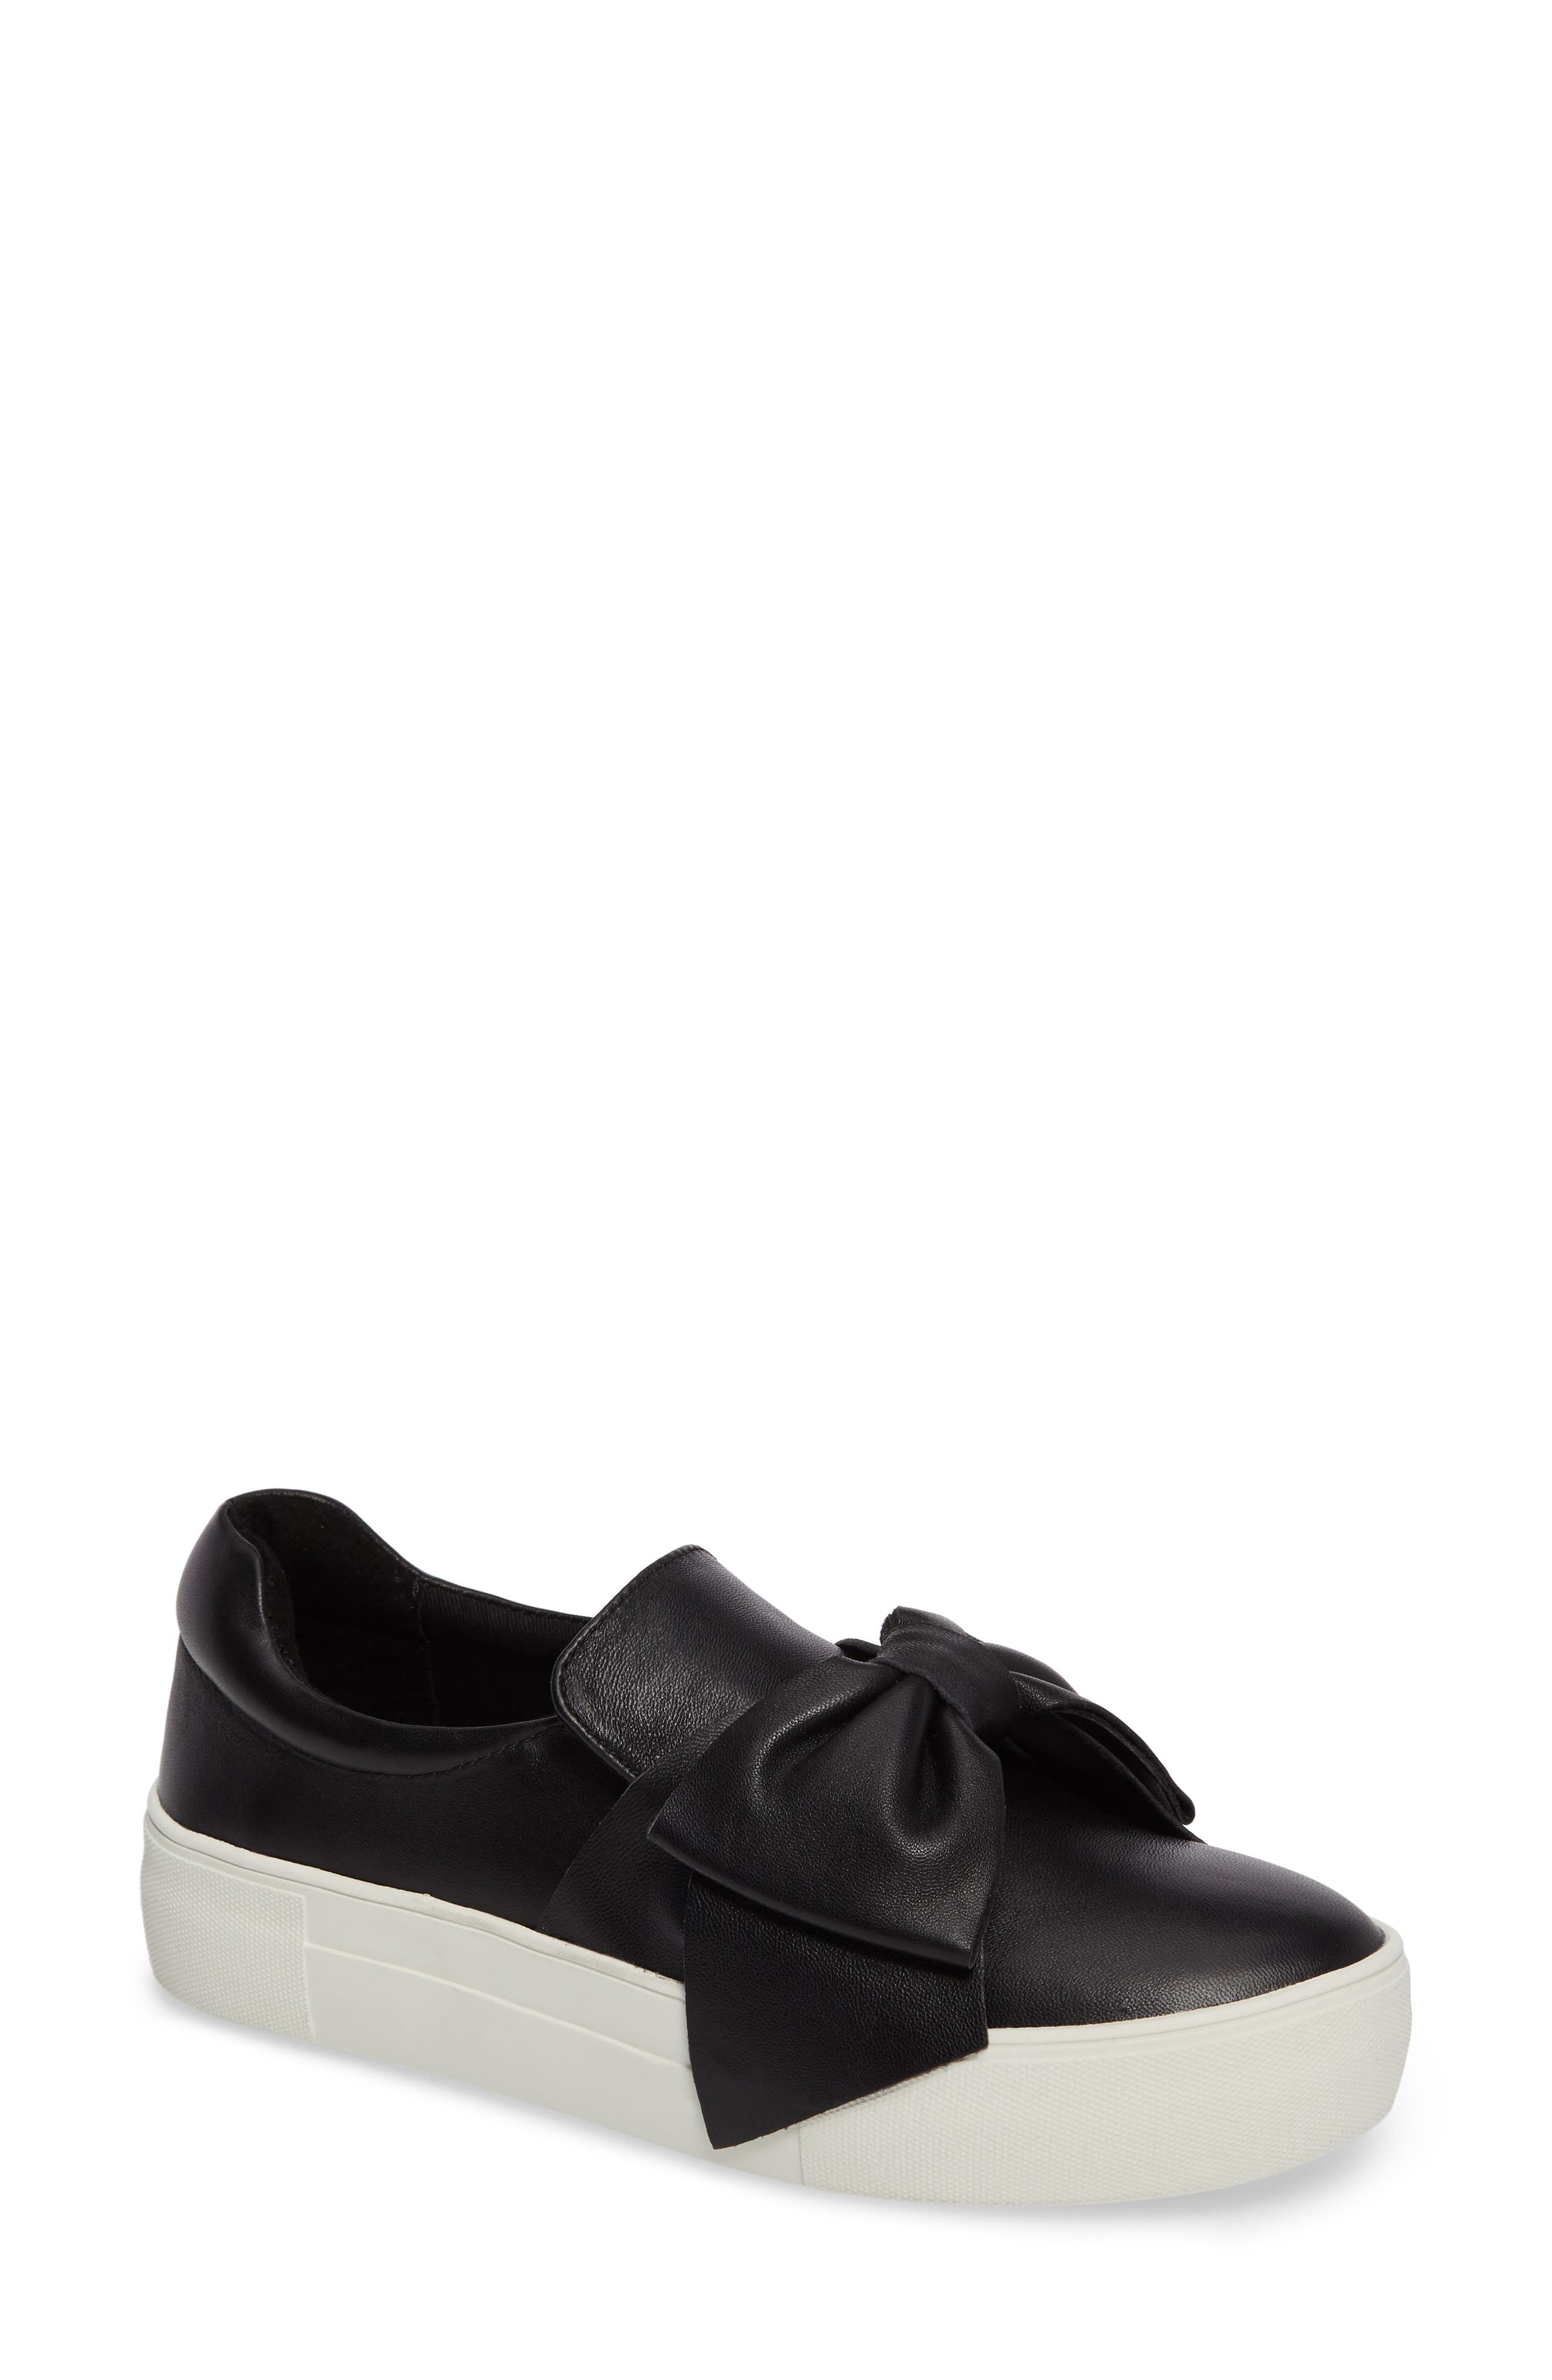 Empire Slip-On,                             Main thumbnail 1, color,                             Black Leather